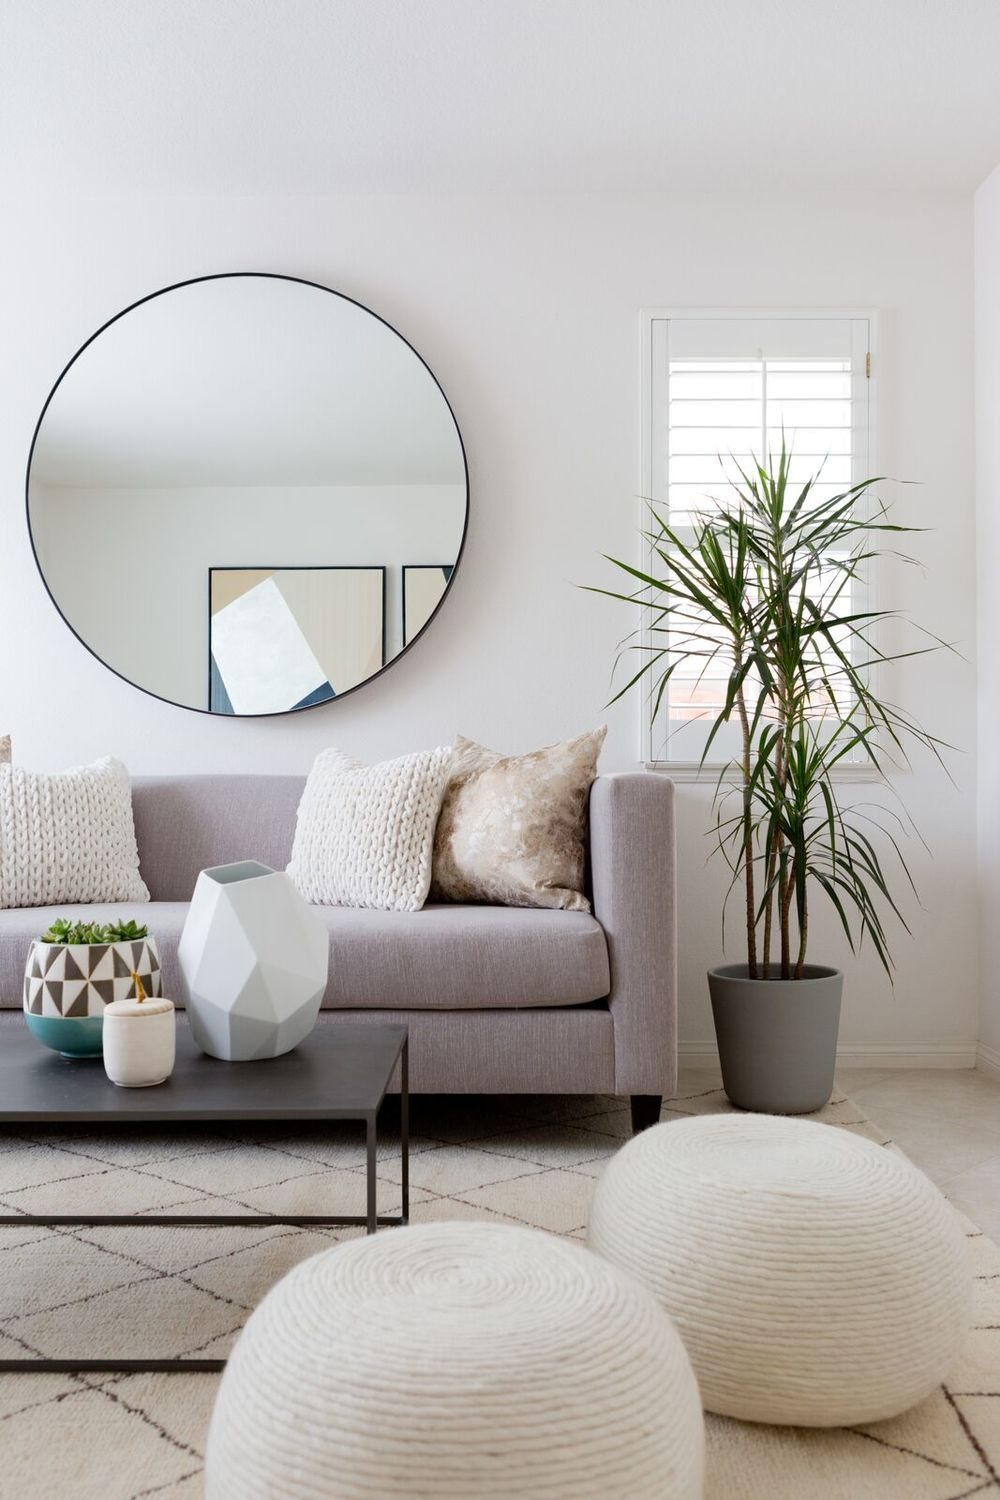 Round Mirror Grey Linen Sofa Rope Coil Ottomans Plant Etc Are Commonly Used In Mode Cozy Living Room Design Living Room Scandinavian Minimalist Living Room